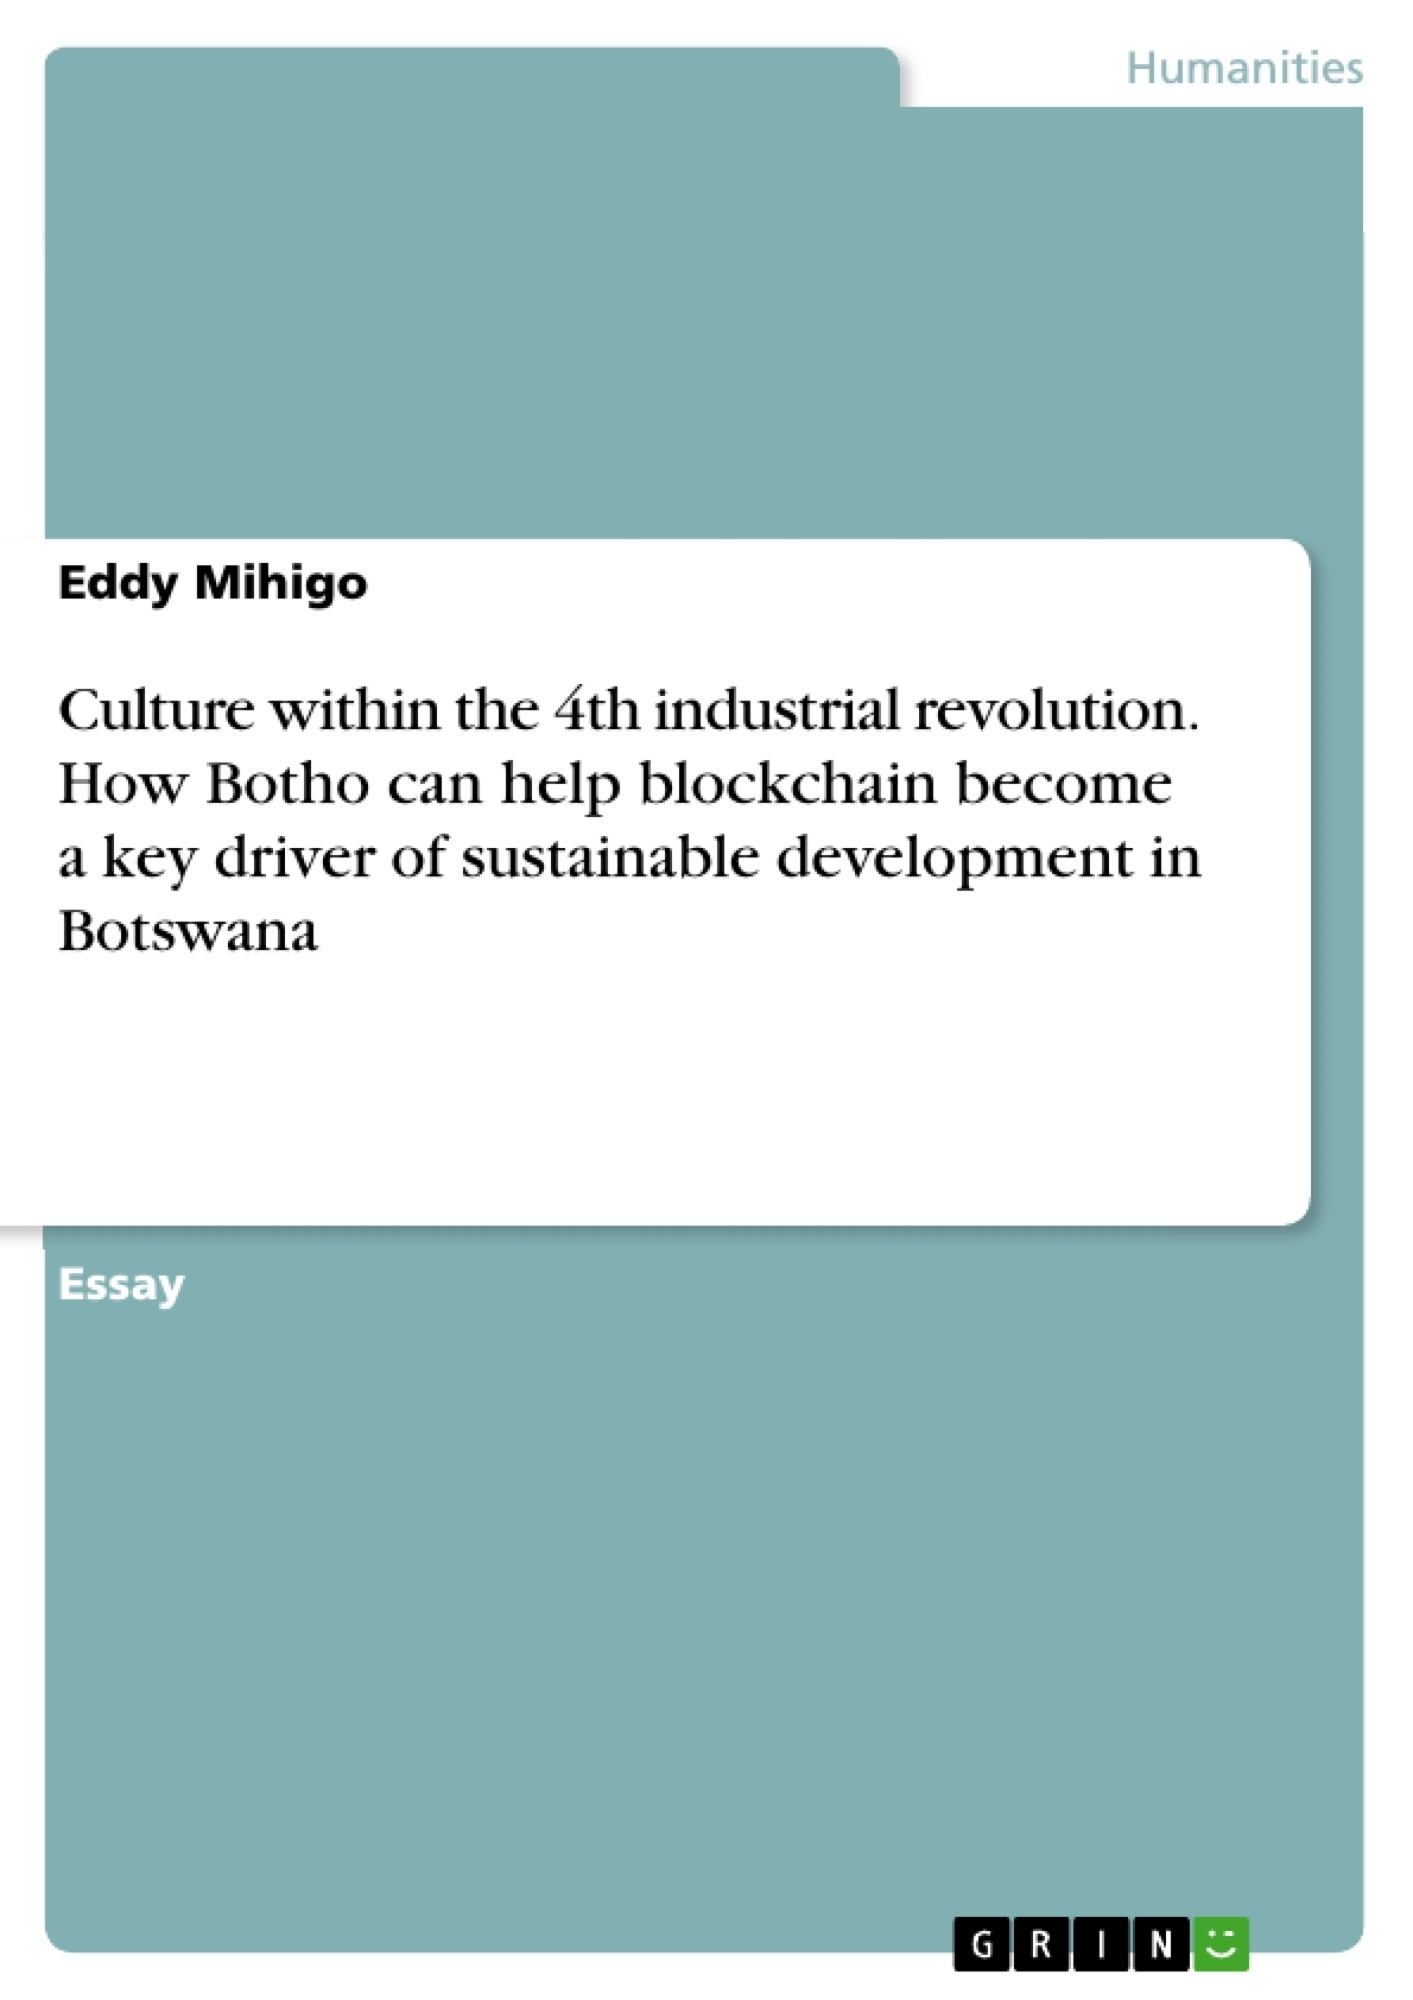 Title: Culture within the 4th industrial revolution. How Botho can help blockchain become a key driver of sustainable development in Botswana